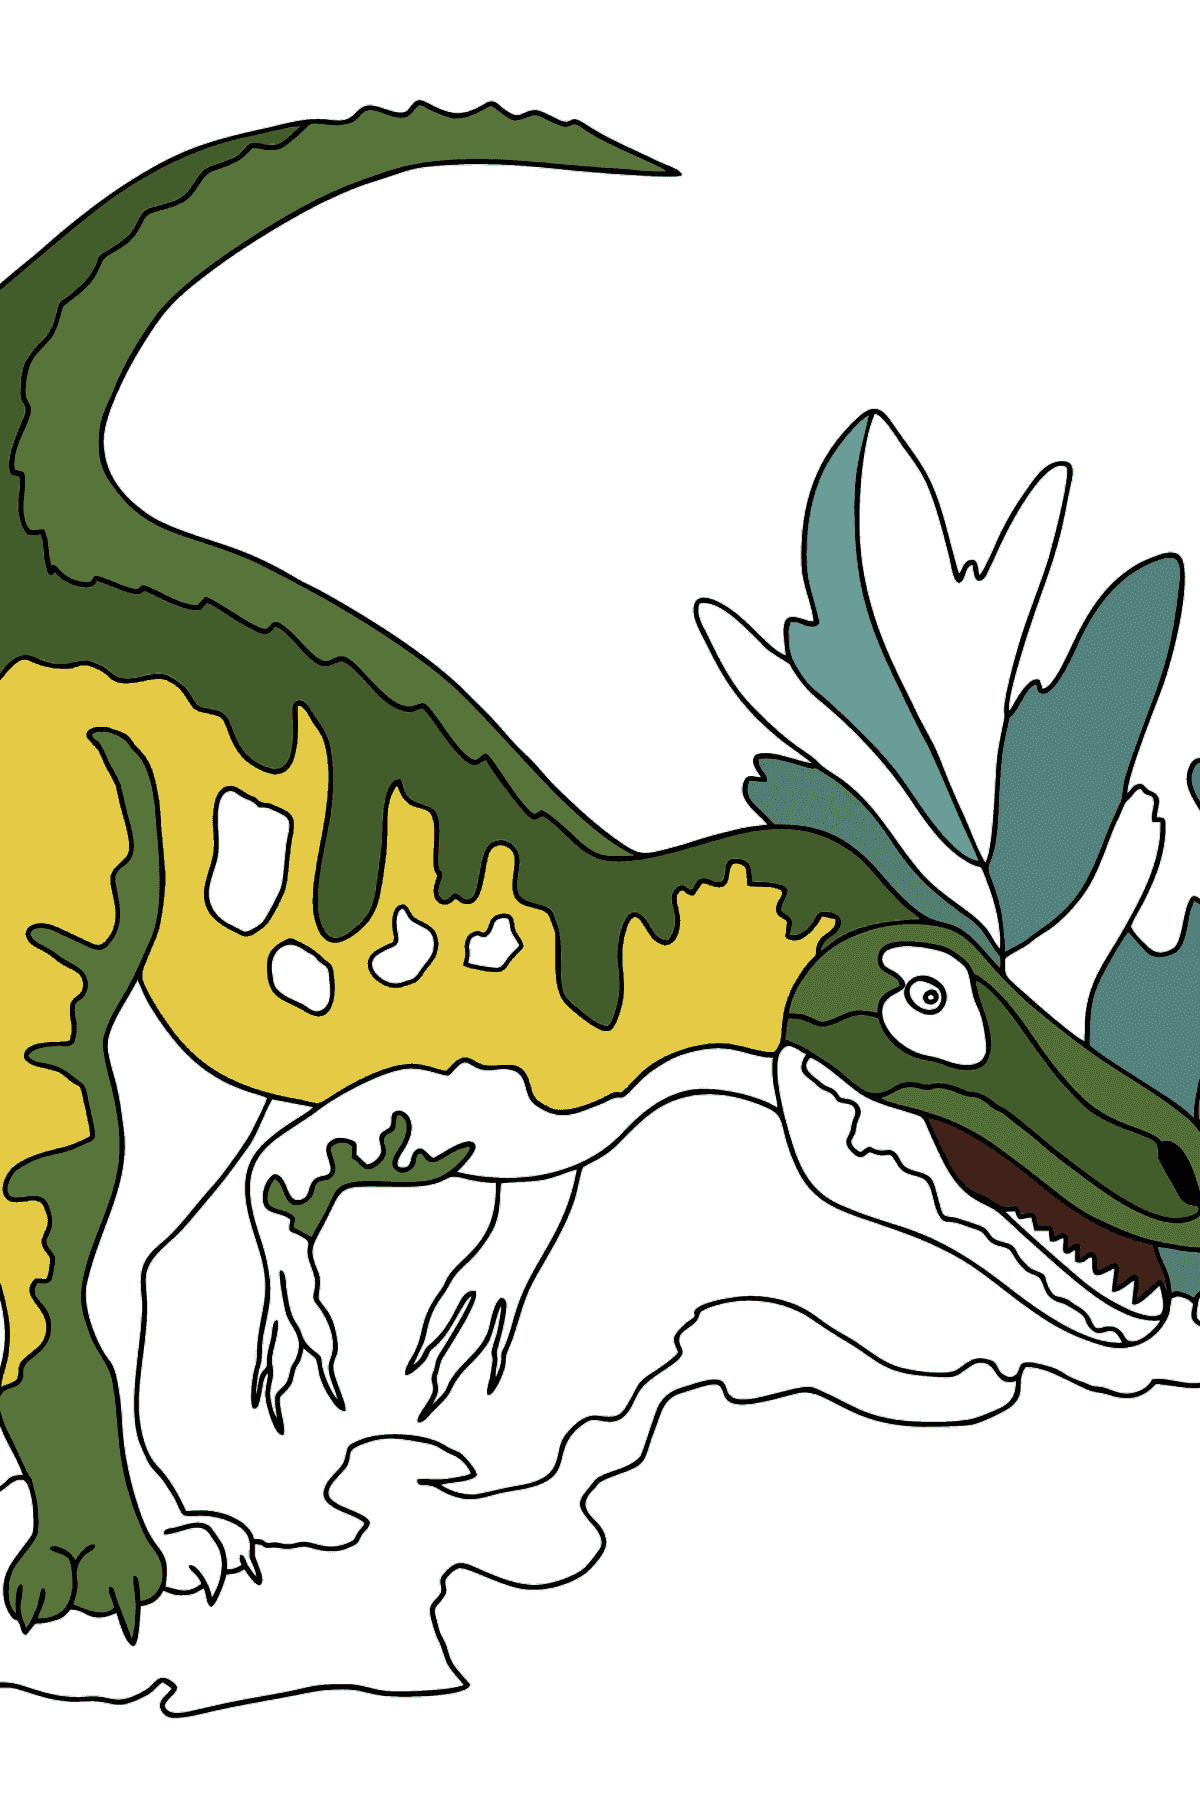 Coloring Page - Allosaurus - A Well-Researched Dinosaur - Coloring Pages for Kids